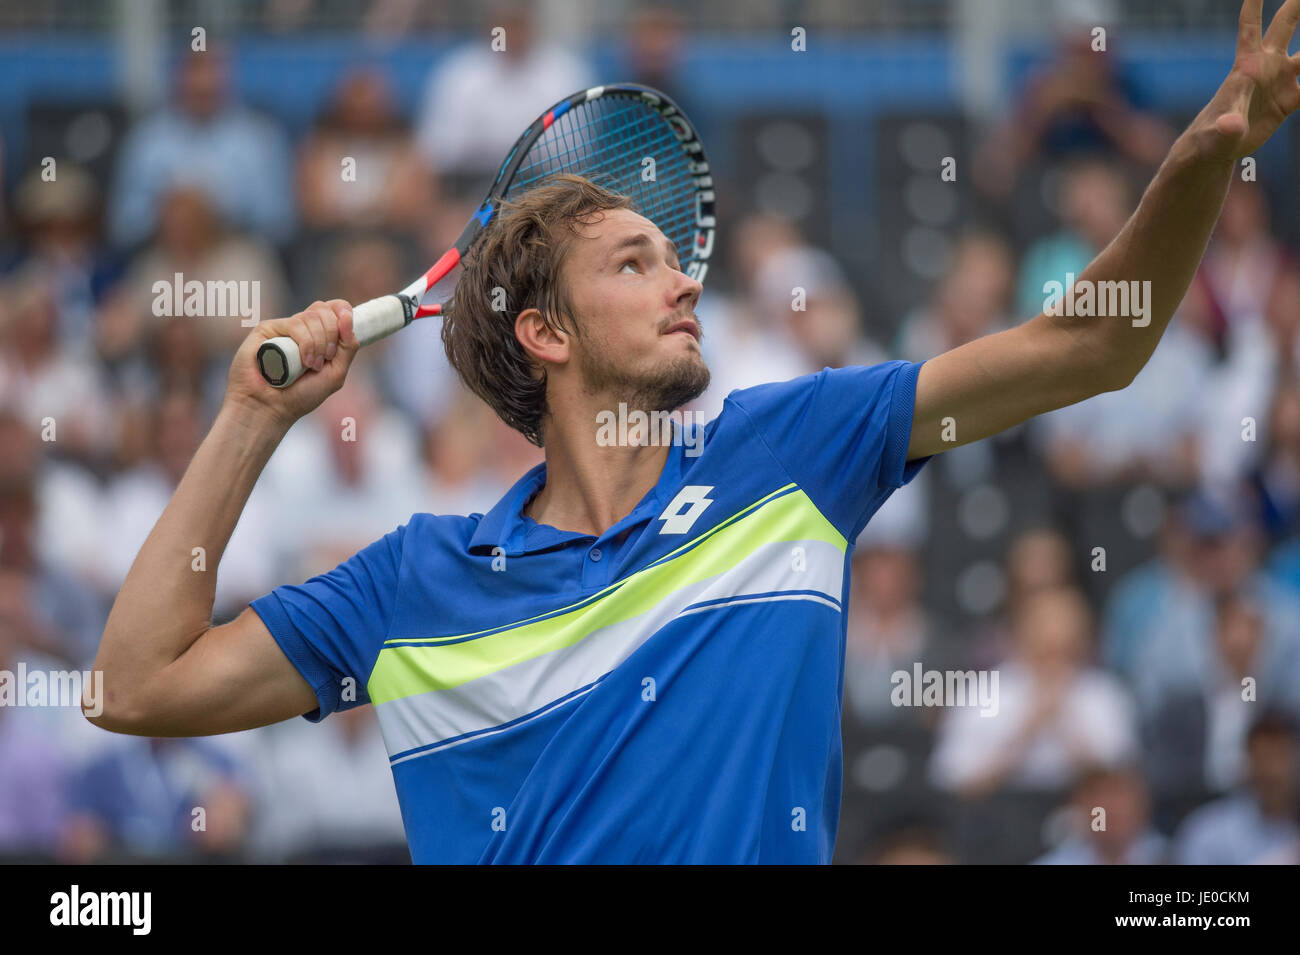 The Queen's Club, London, UK. 22nd June 2017. Day 4 of the 2017 Aegon Tennis Championships in west London, Daniil - Stock Image